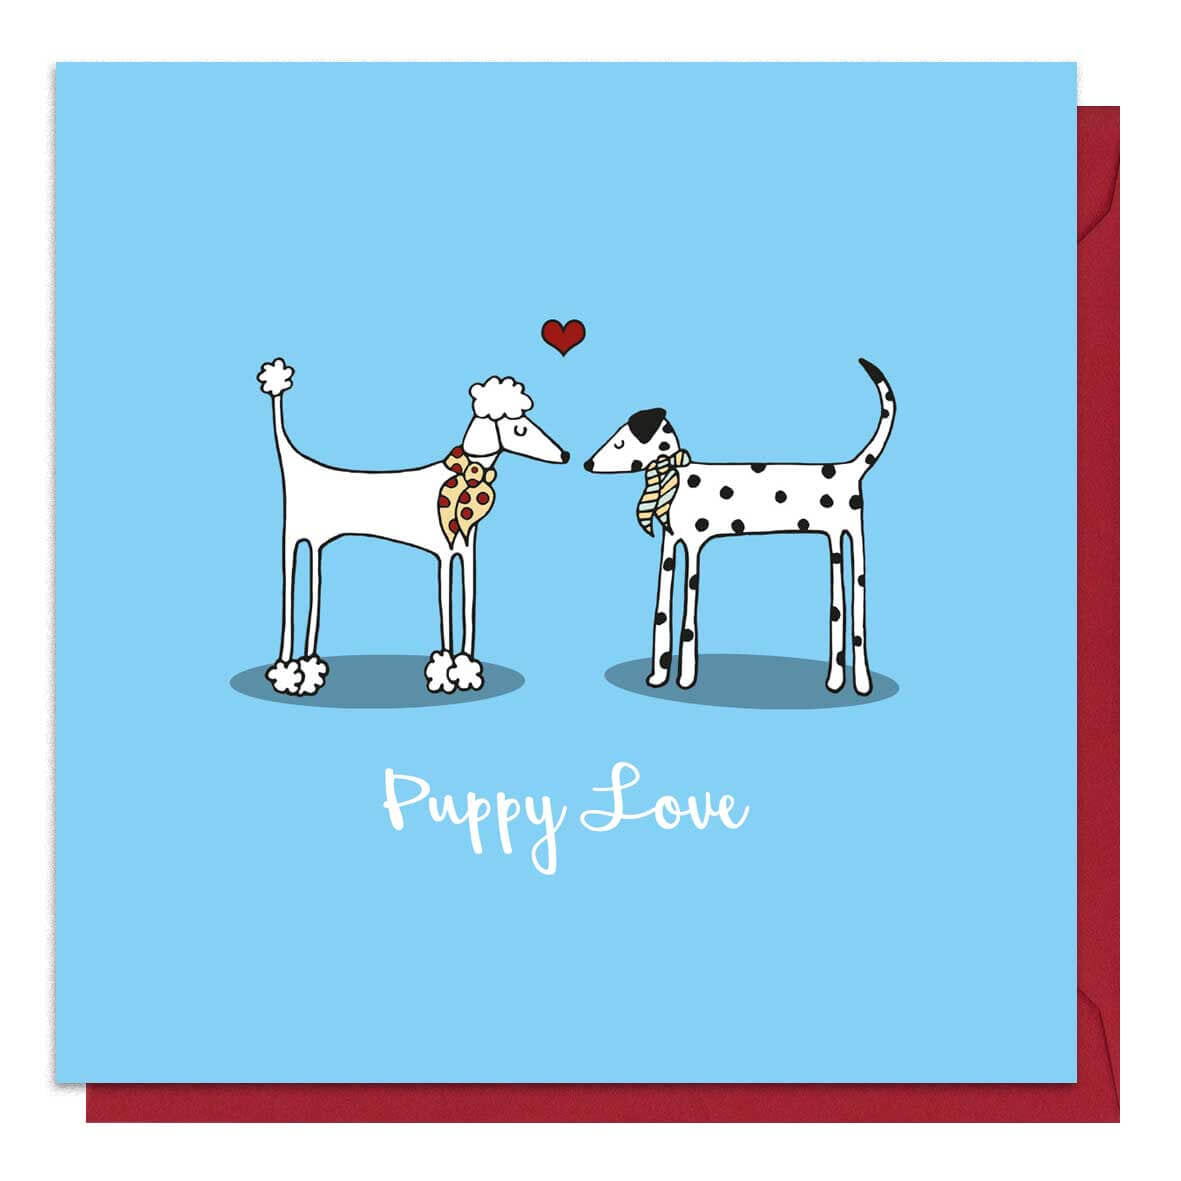 Blue dog Valentine's Day card with an illustration of a poodle and a dalmatian